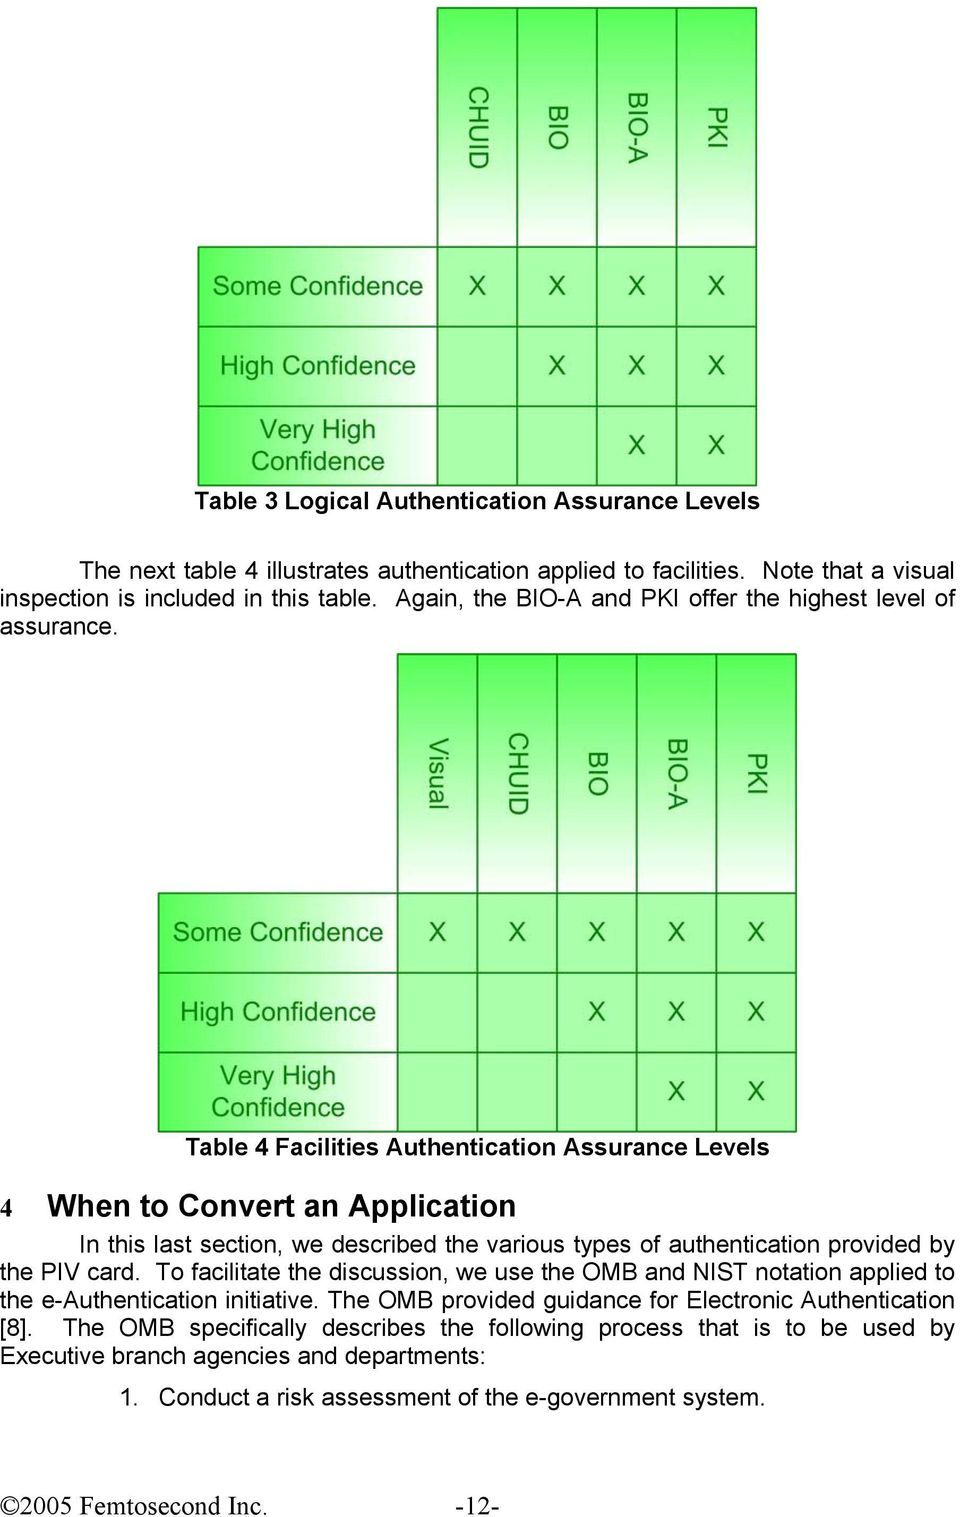 Table 4 Facilities Authentication Assurance Levels 4 When to Convert an Application In this last section, we described the various types of authentication provided by the PIV card.